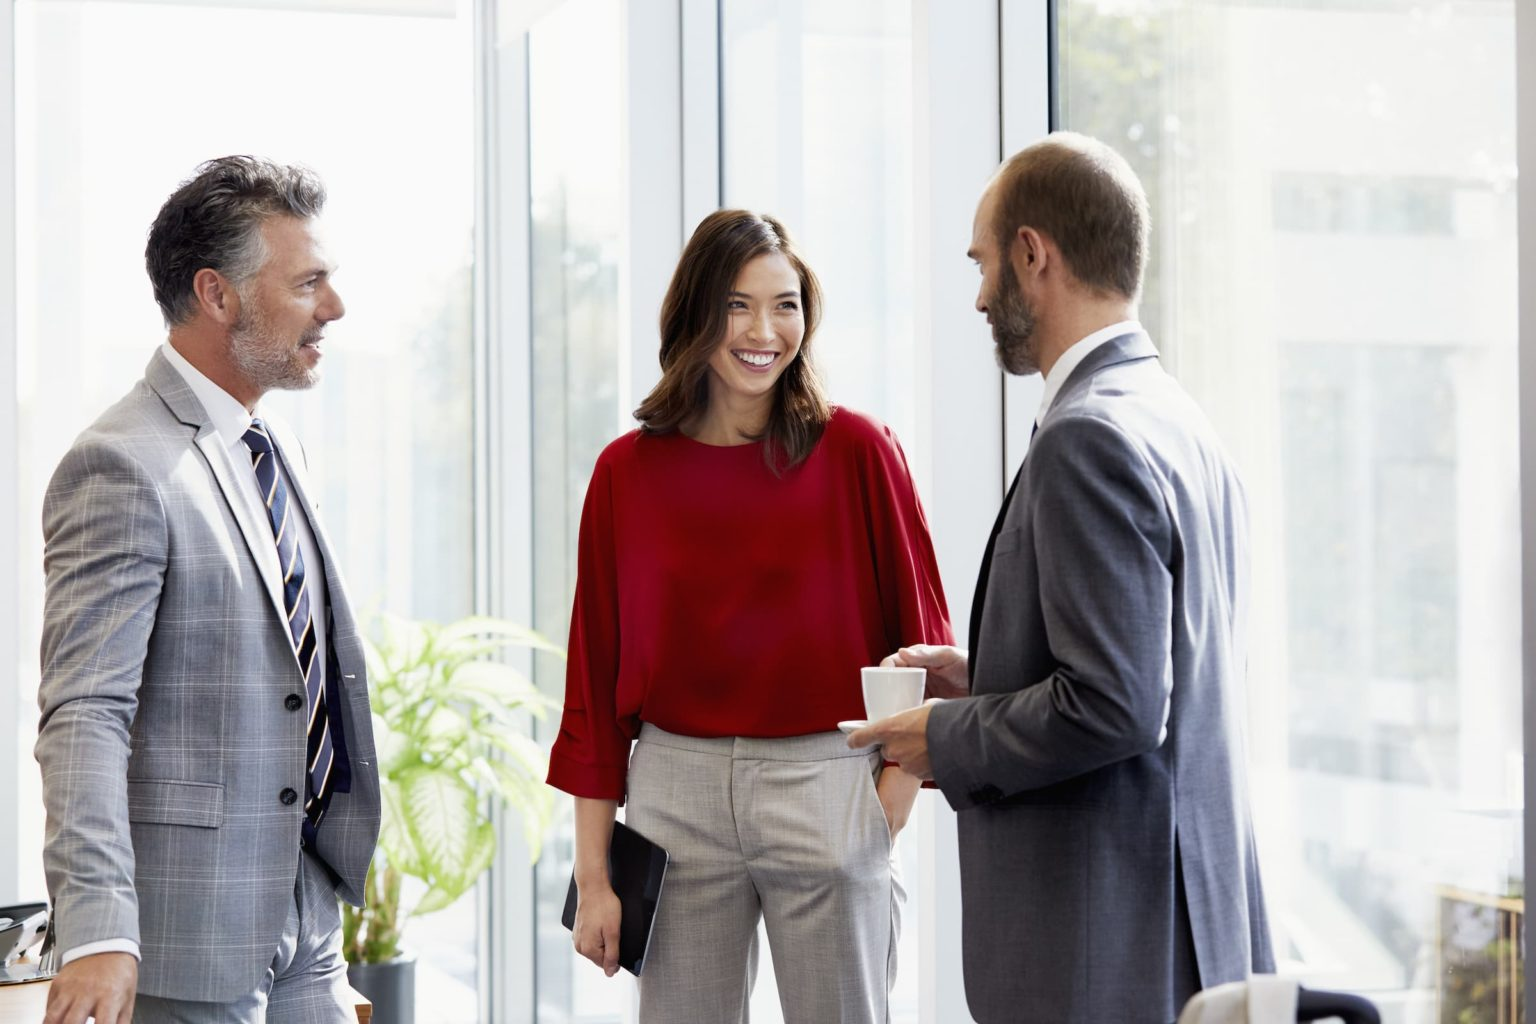 Smiling business people discussing in meeting while standing by glass window at office